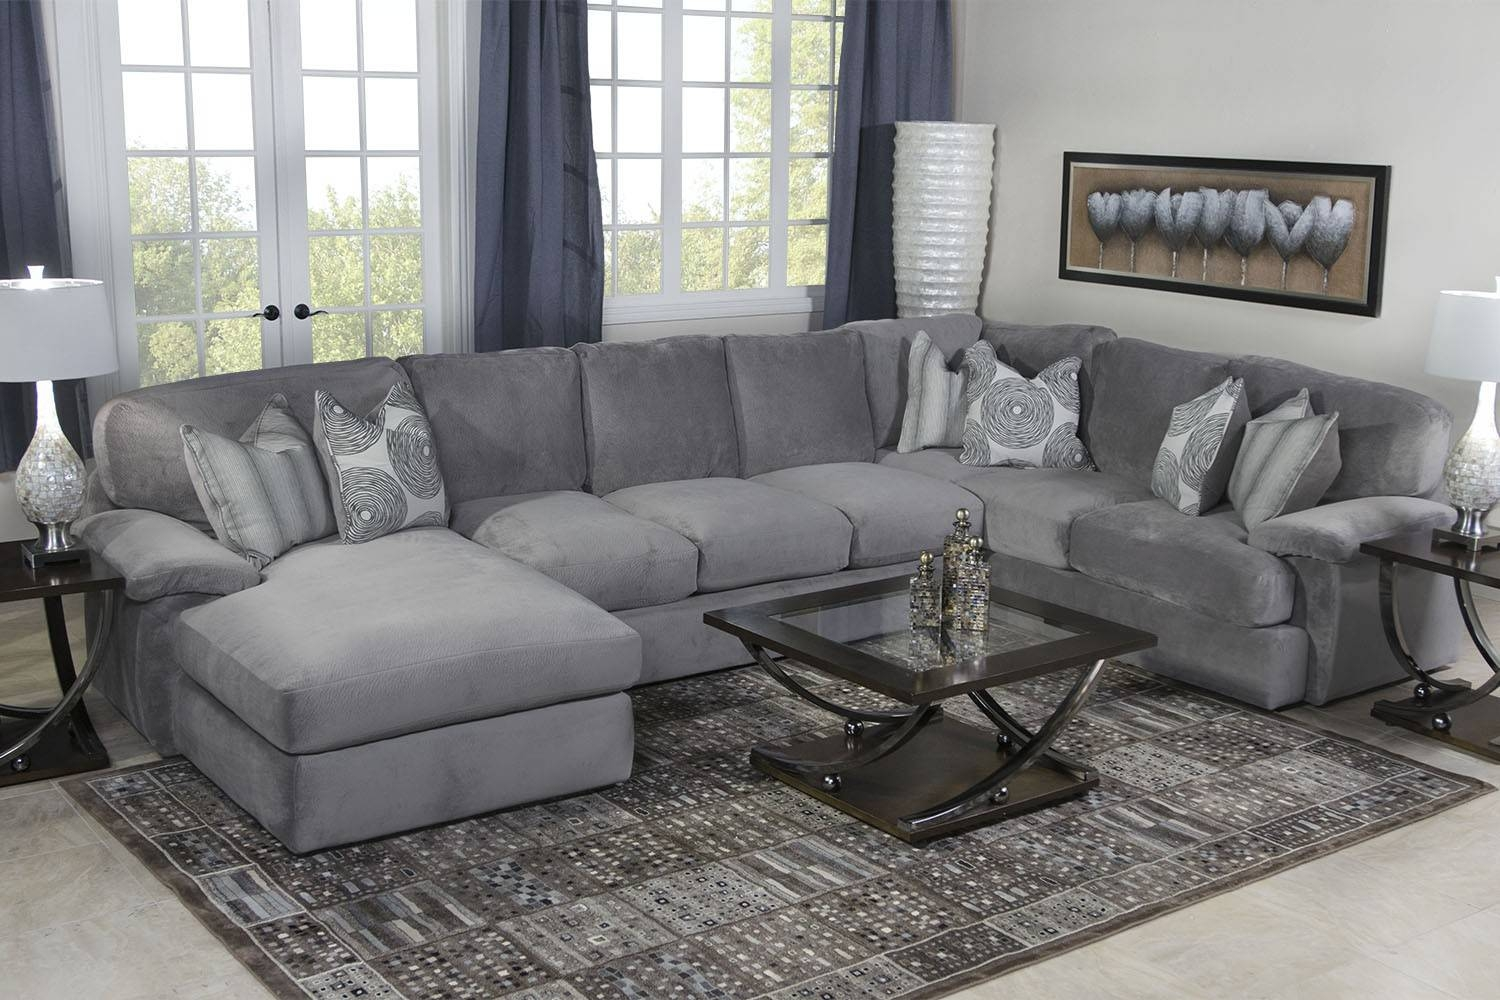 Key West Sectional Living Room In Gray | Mor Furniture For Less for Media Sofa Sectionals (Image 9 of 25)